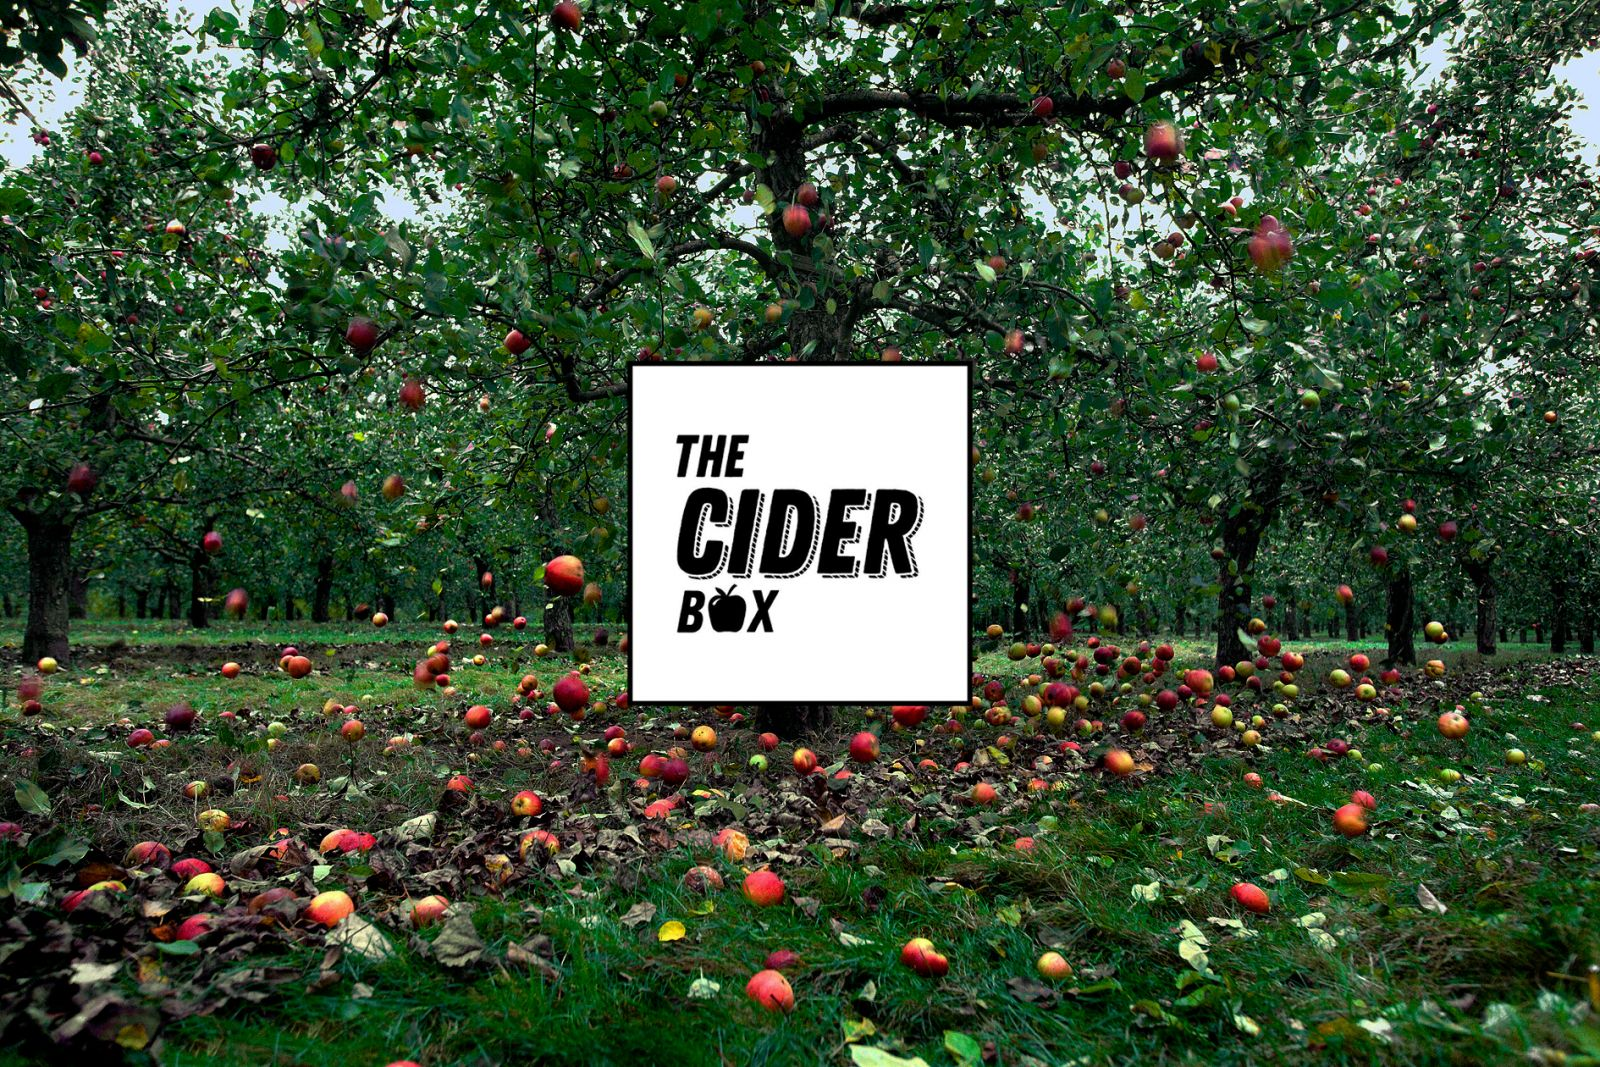 The Cider Box store.